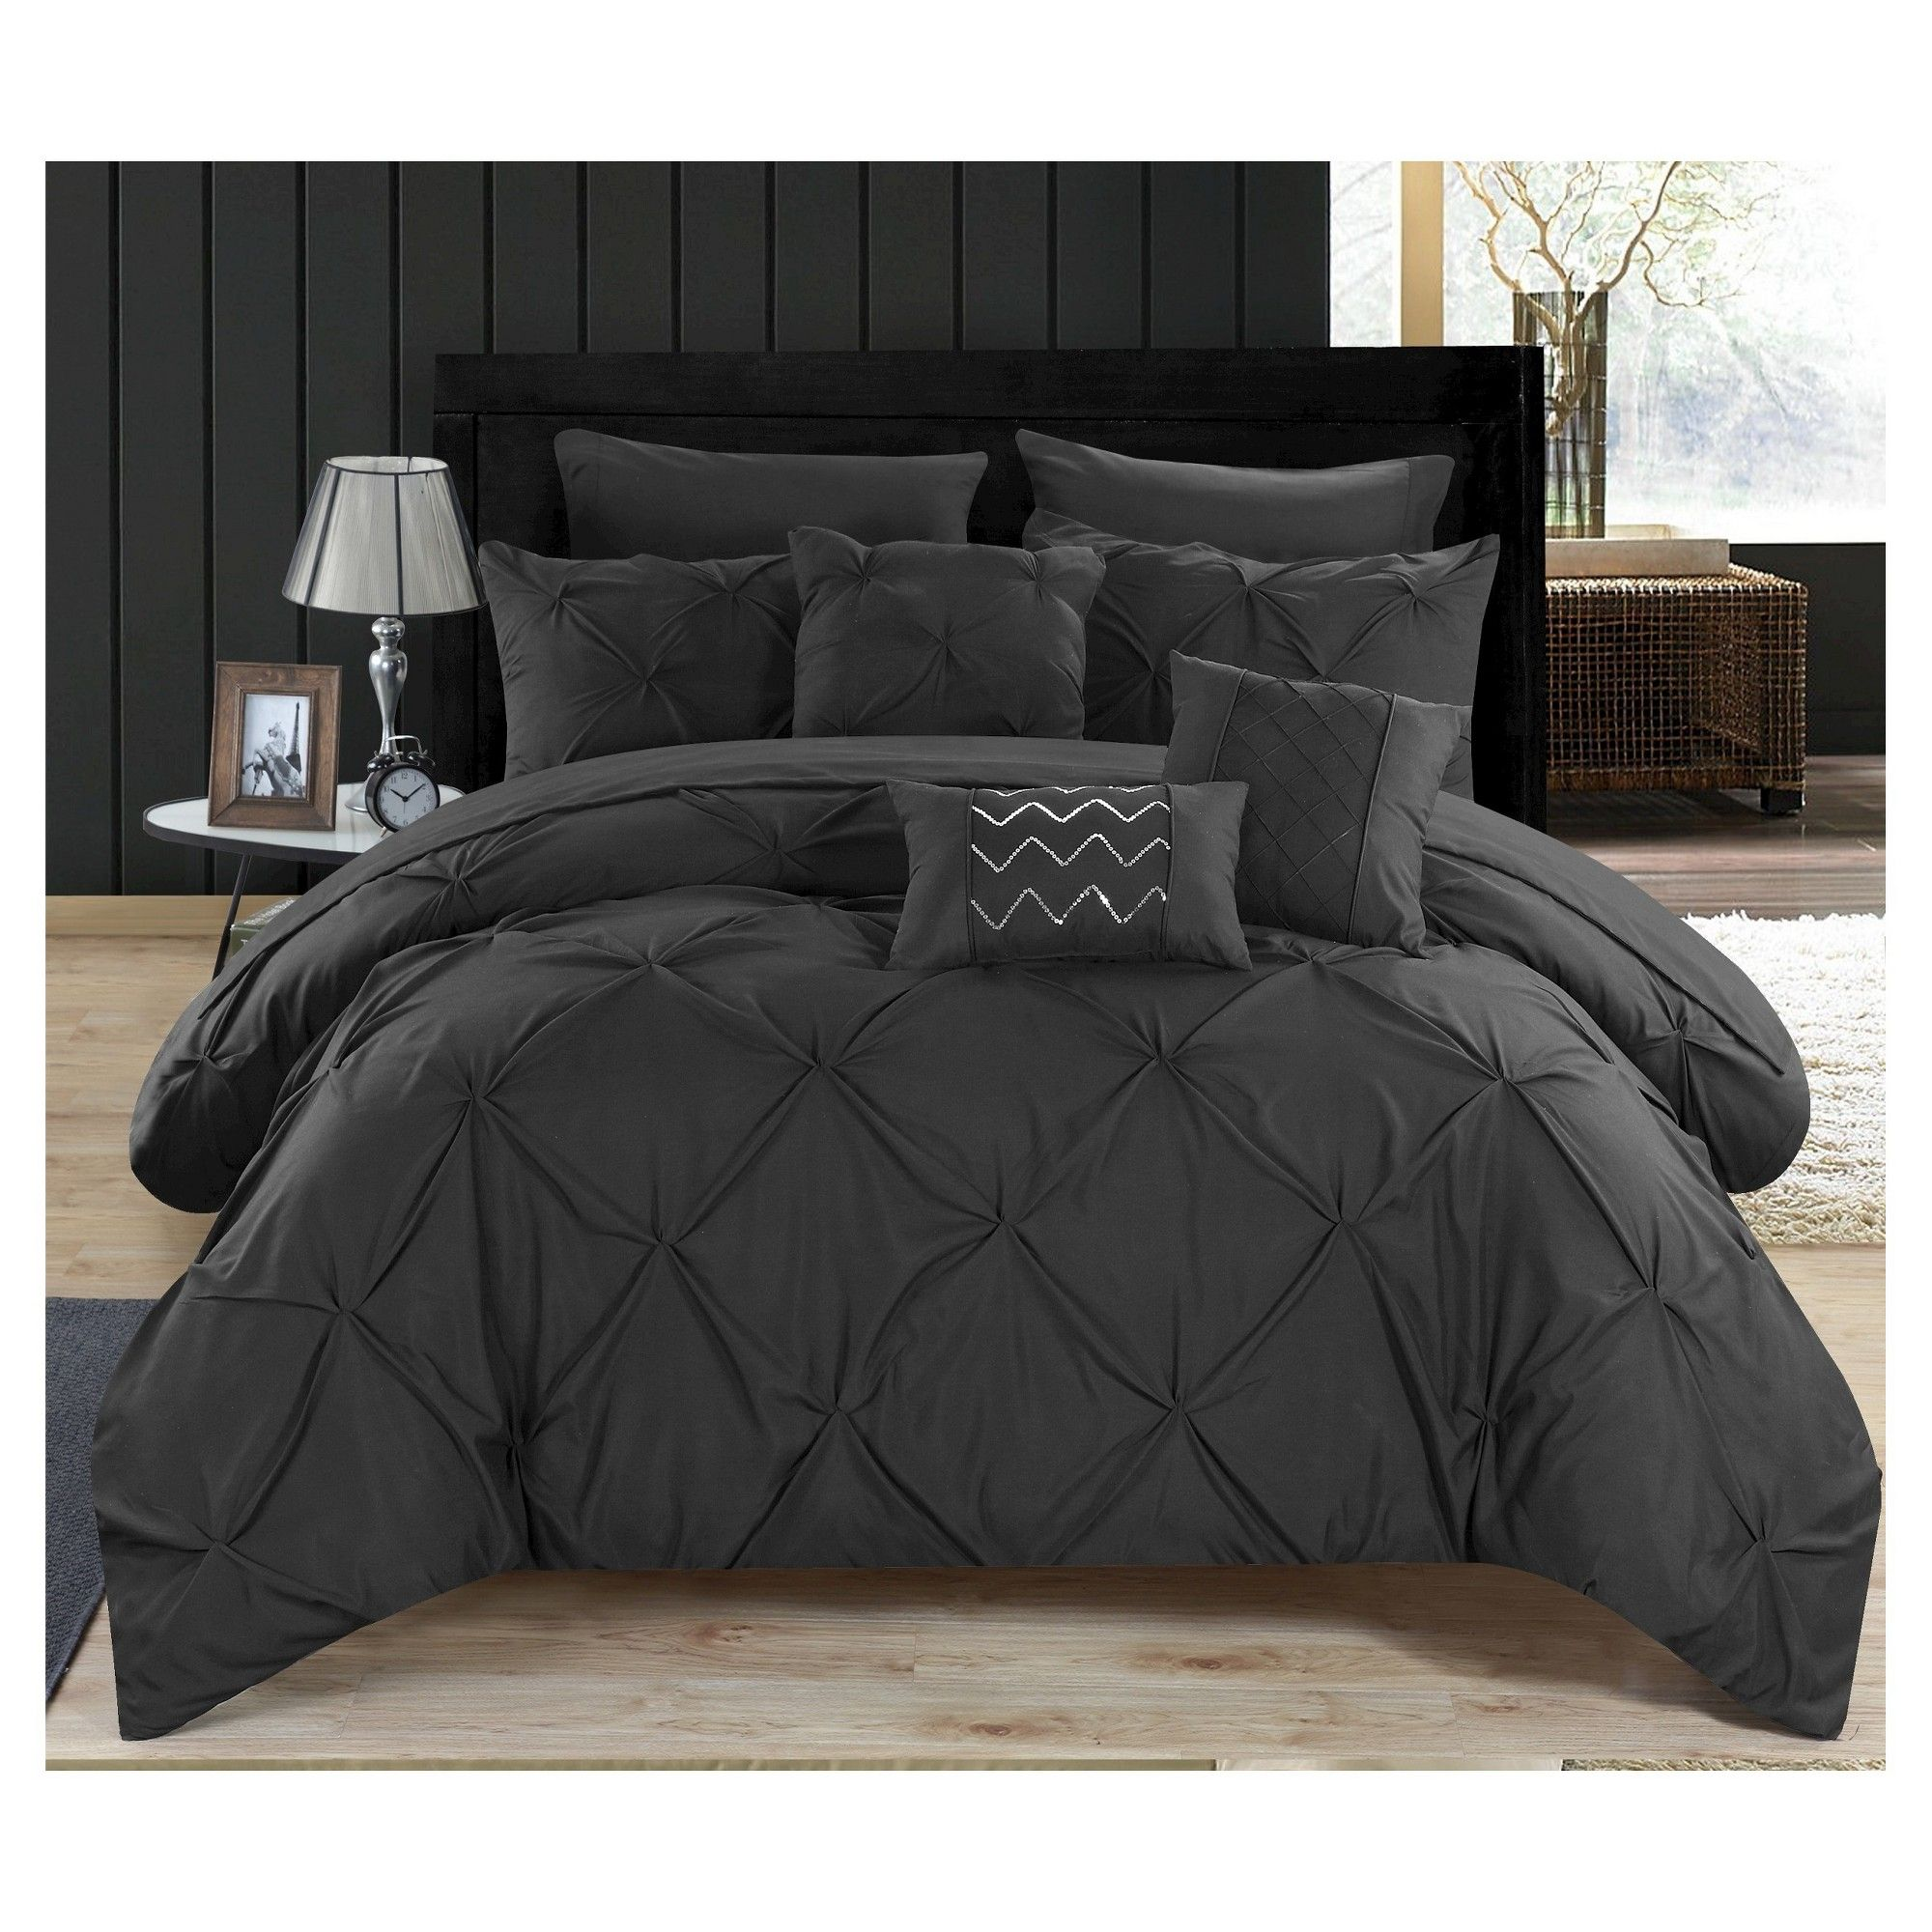 Valentina Pinch Pleated Ruffled Comforter Set 10 Piece Queen